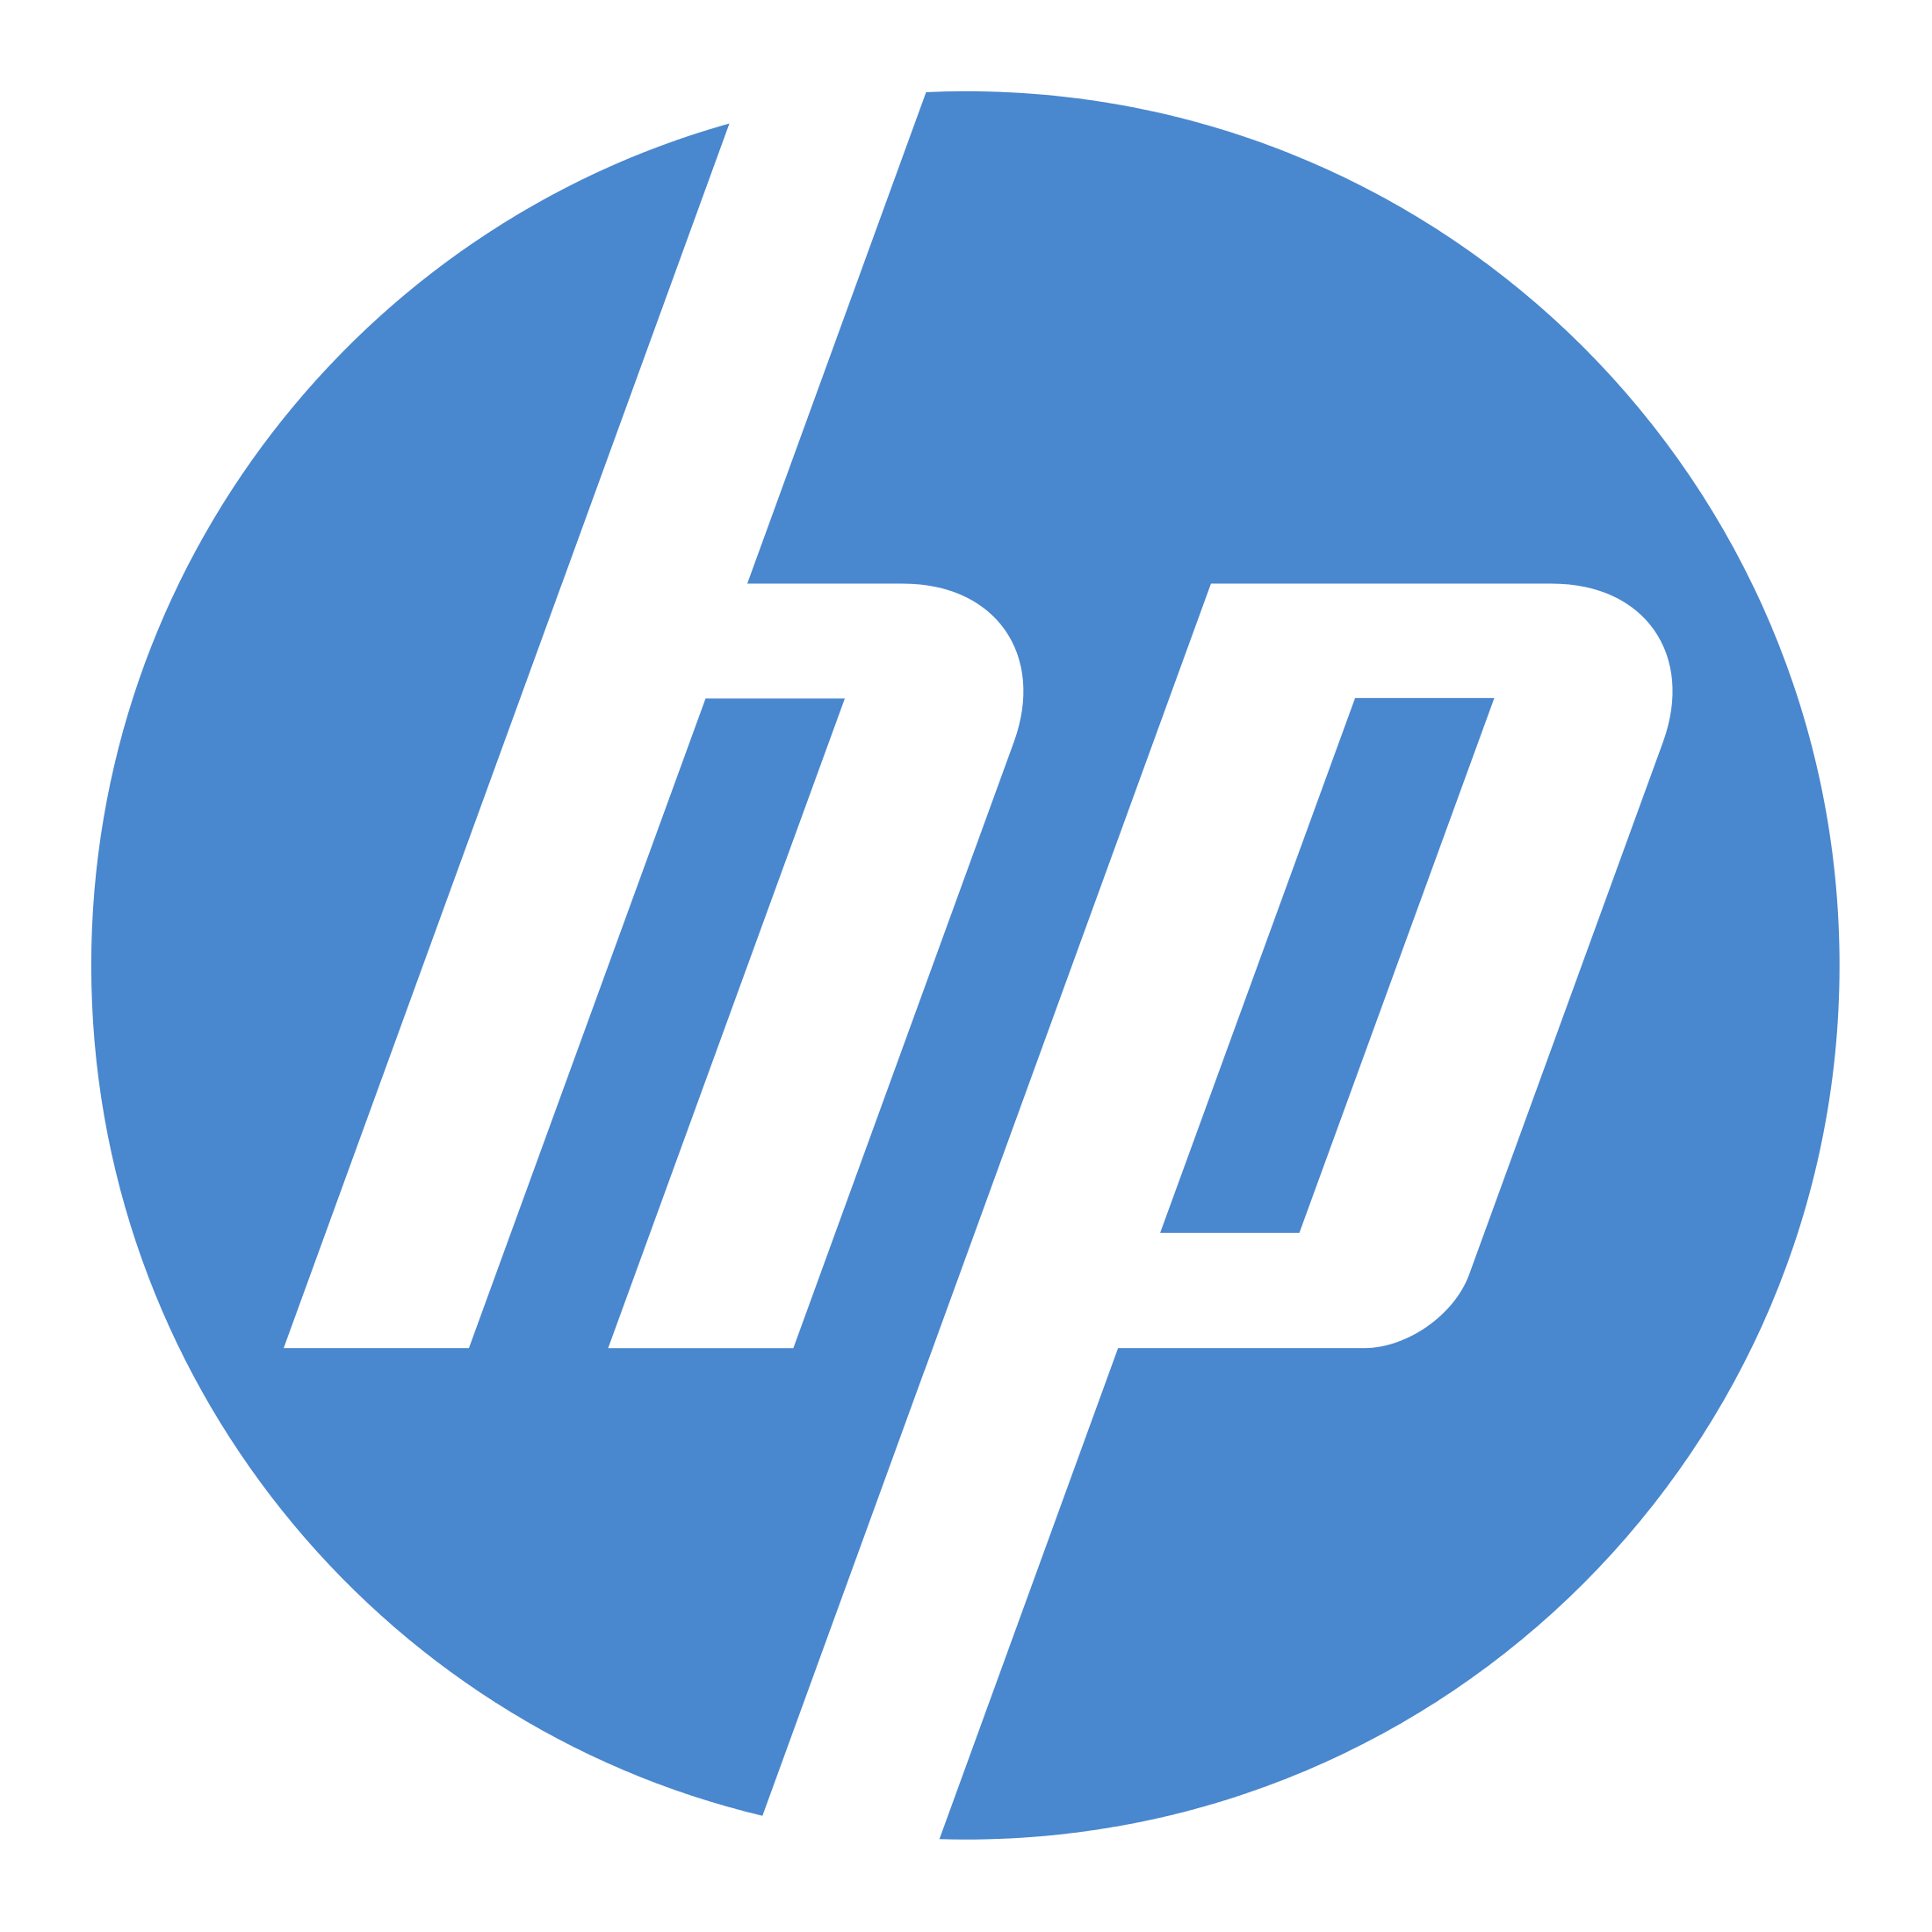 HP Logo, HP Symbol Meaning, History and Evolution